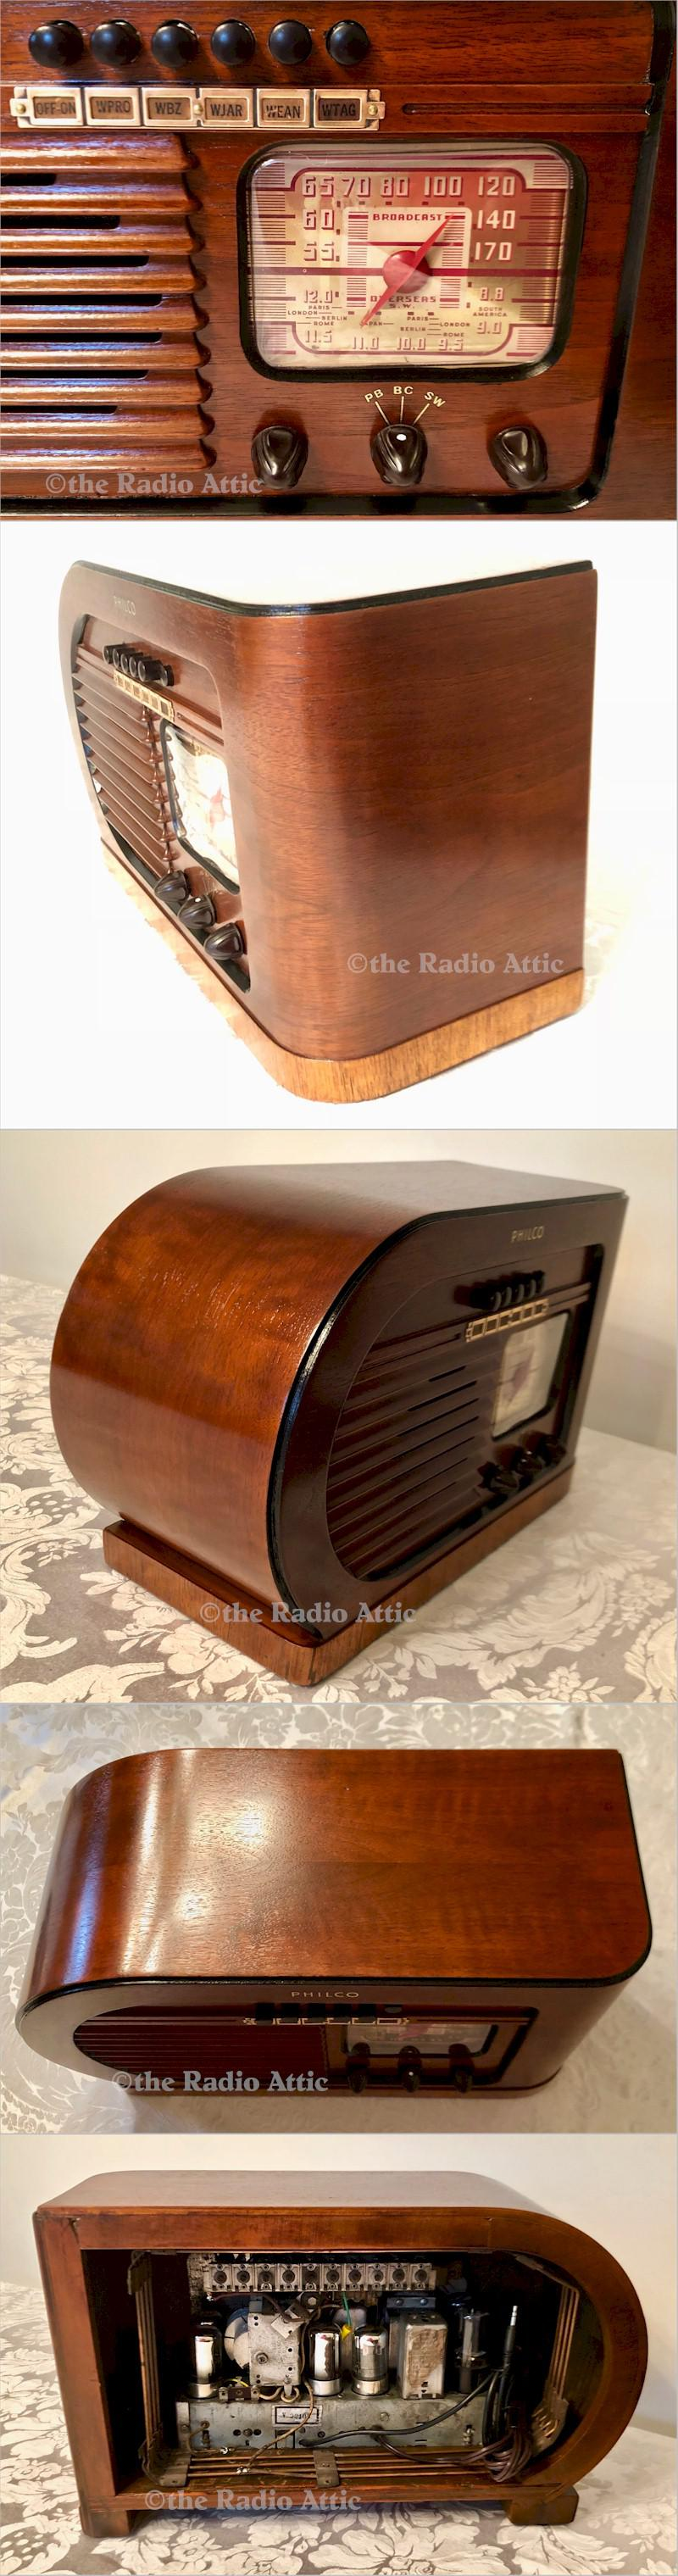 "Philco 41-231T ""Little Bullet"" (1940)"